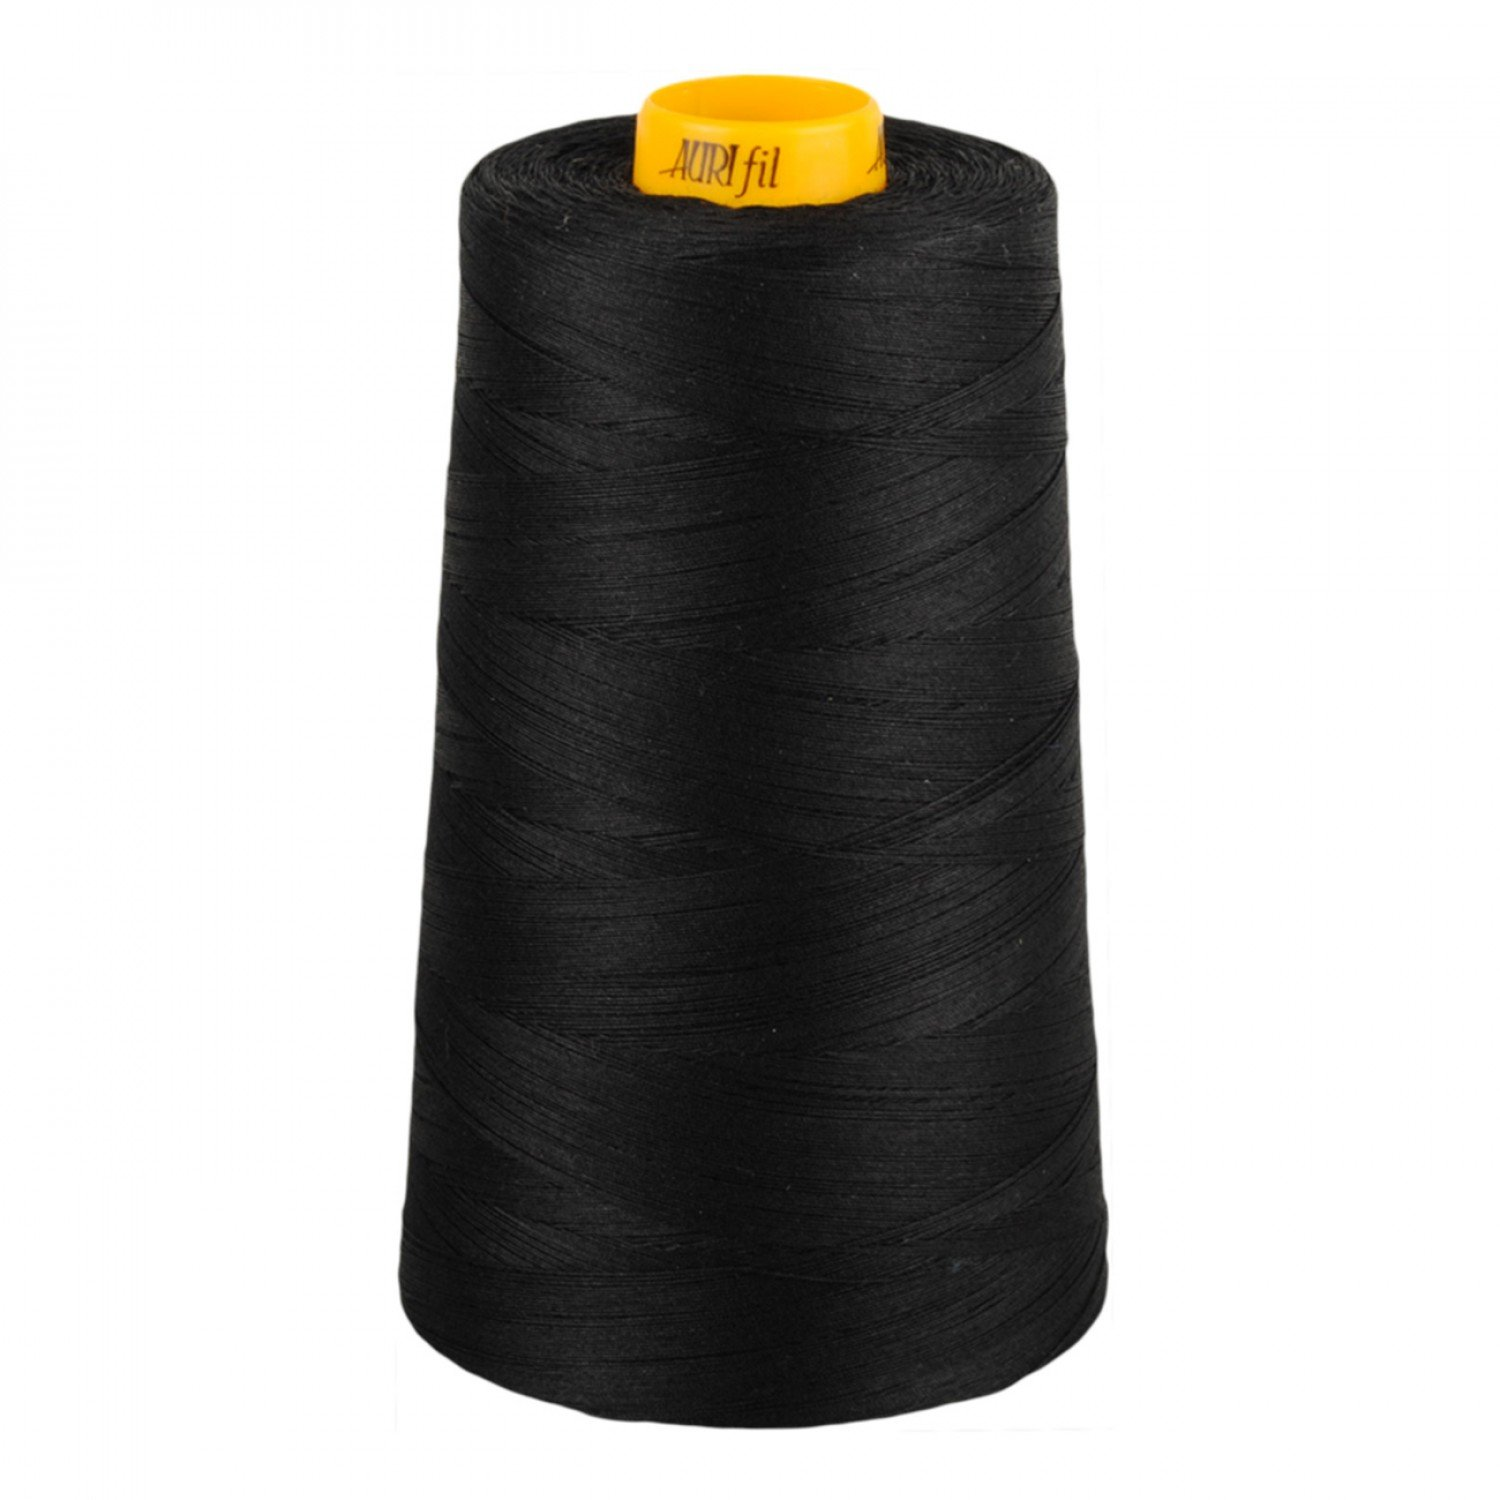 Aurifil Cotton 3-ply Longarm Thread 40wt 3280yds Black